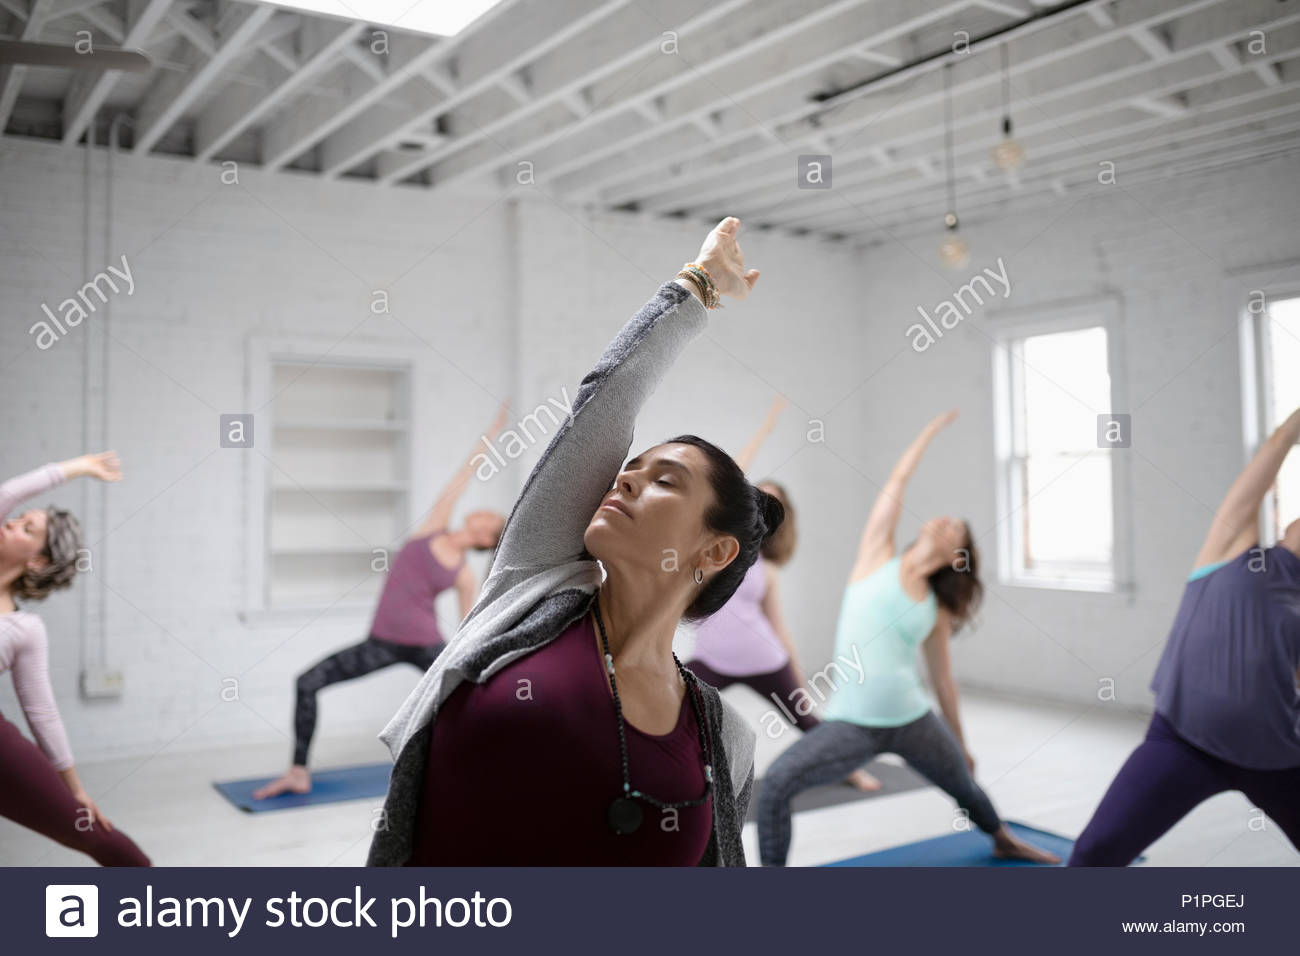 Focused woman practicing yoga reverse warrior pose in yoga class - Stock Image